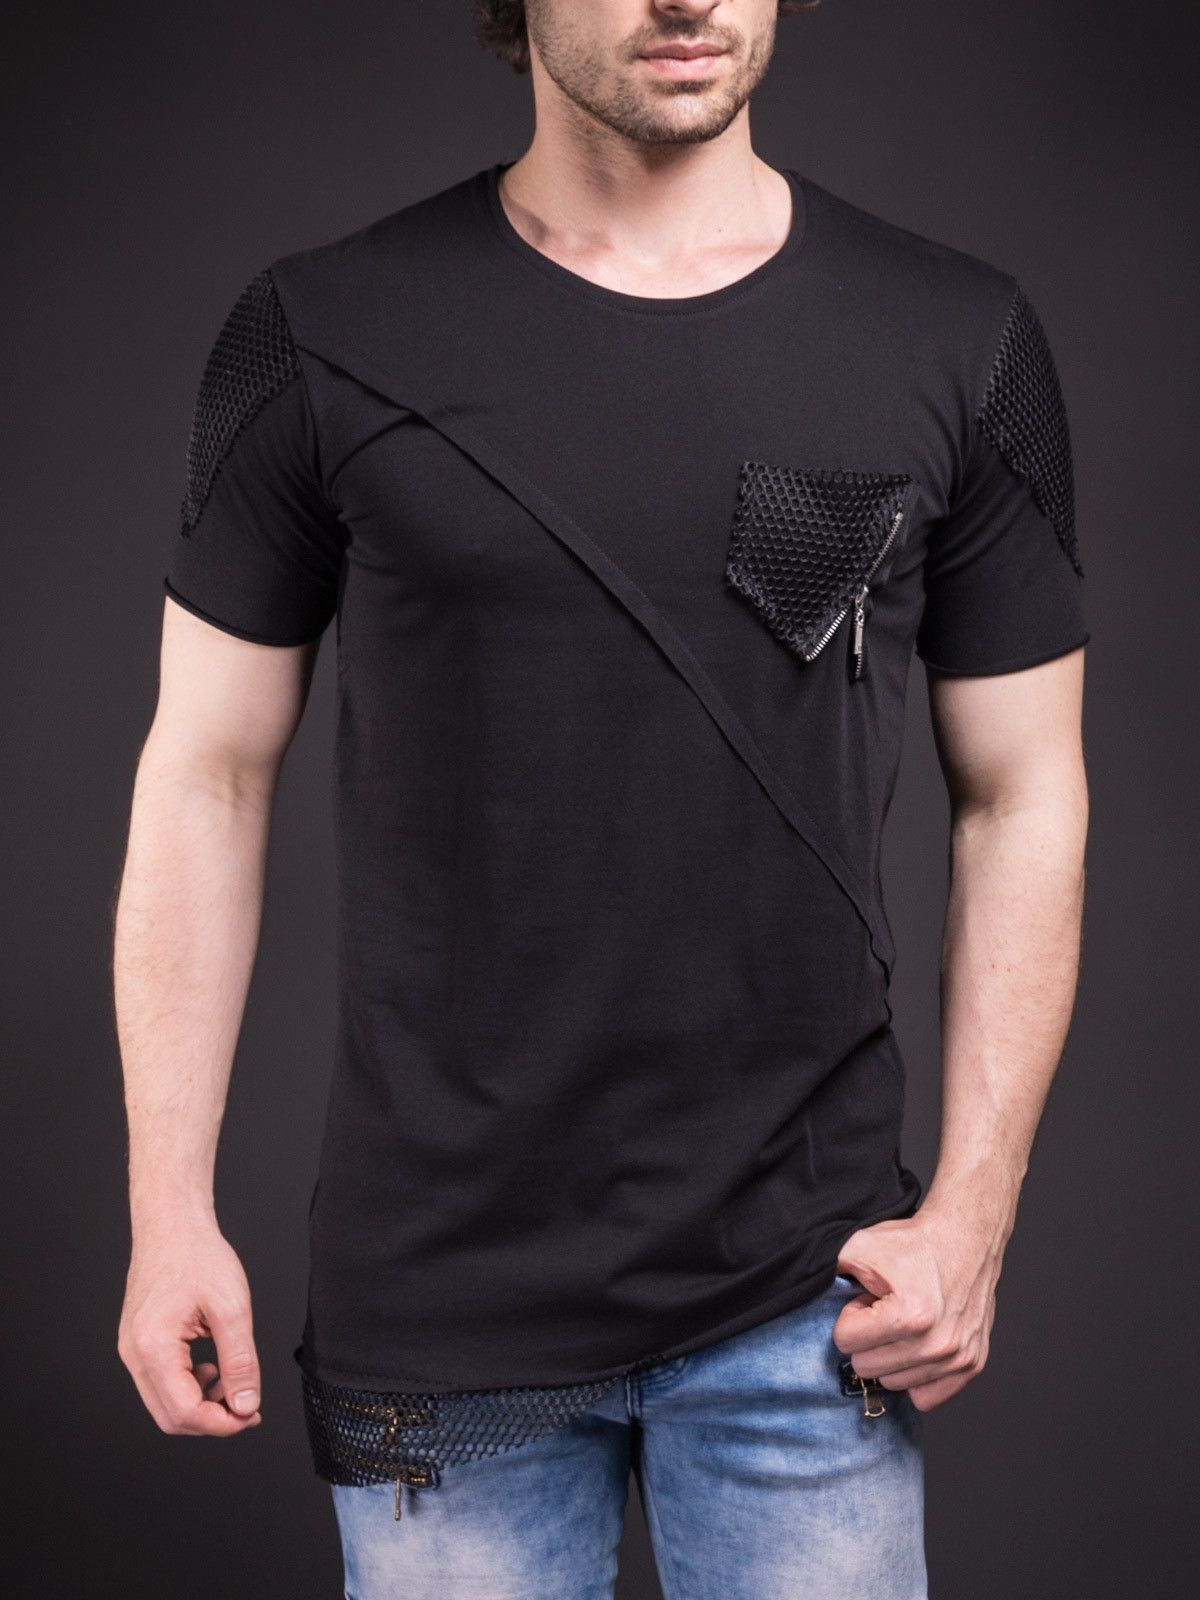 E1 Men 3 Bars Full Side Zipper T-shirt - Black | Muscles, Cotton ...